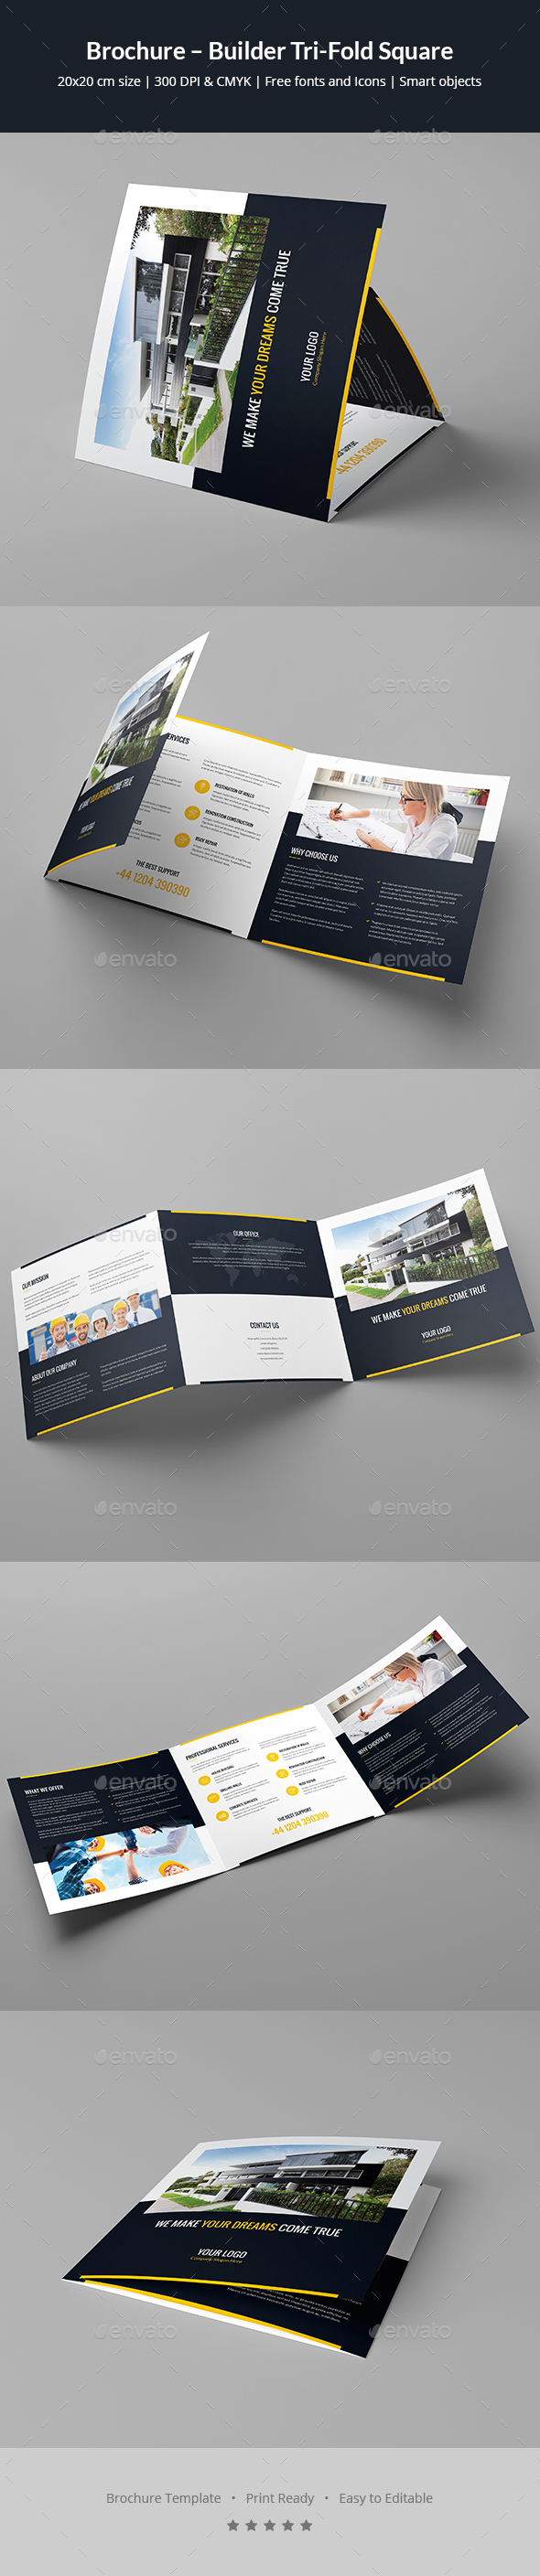 brochure builder tri fold square by artbart graphicriver